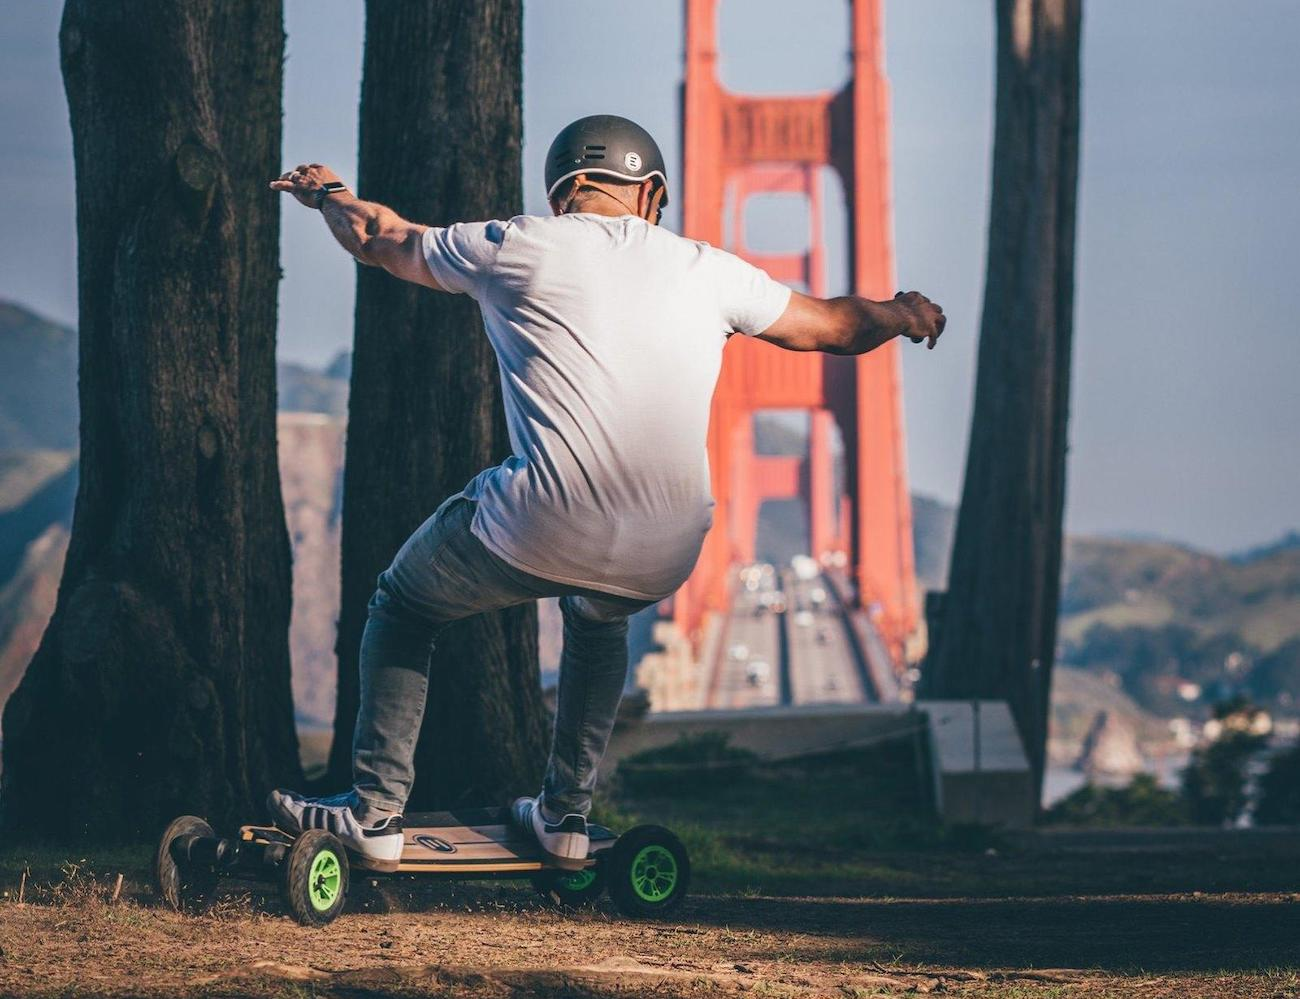 Evolve Bamboo GTR All-Terrain Electric Skateboard provides incredible flexibility and strength